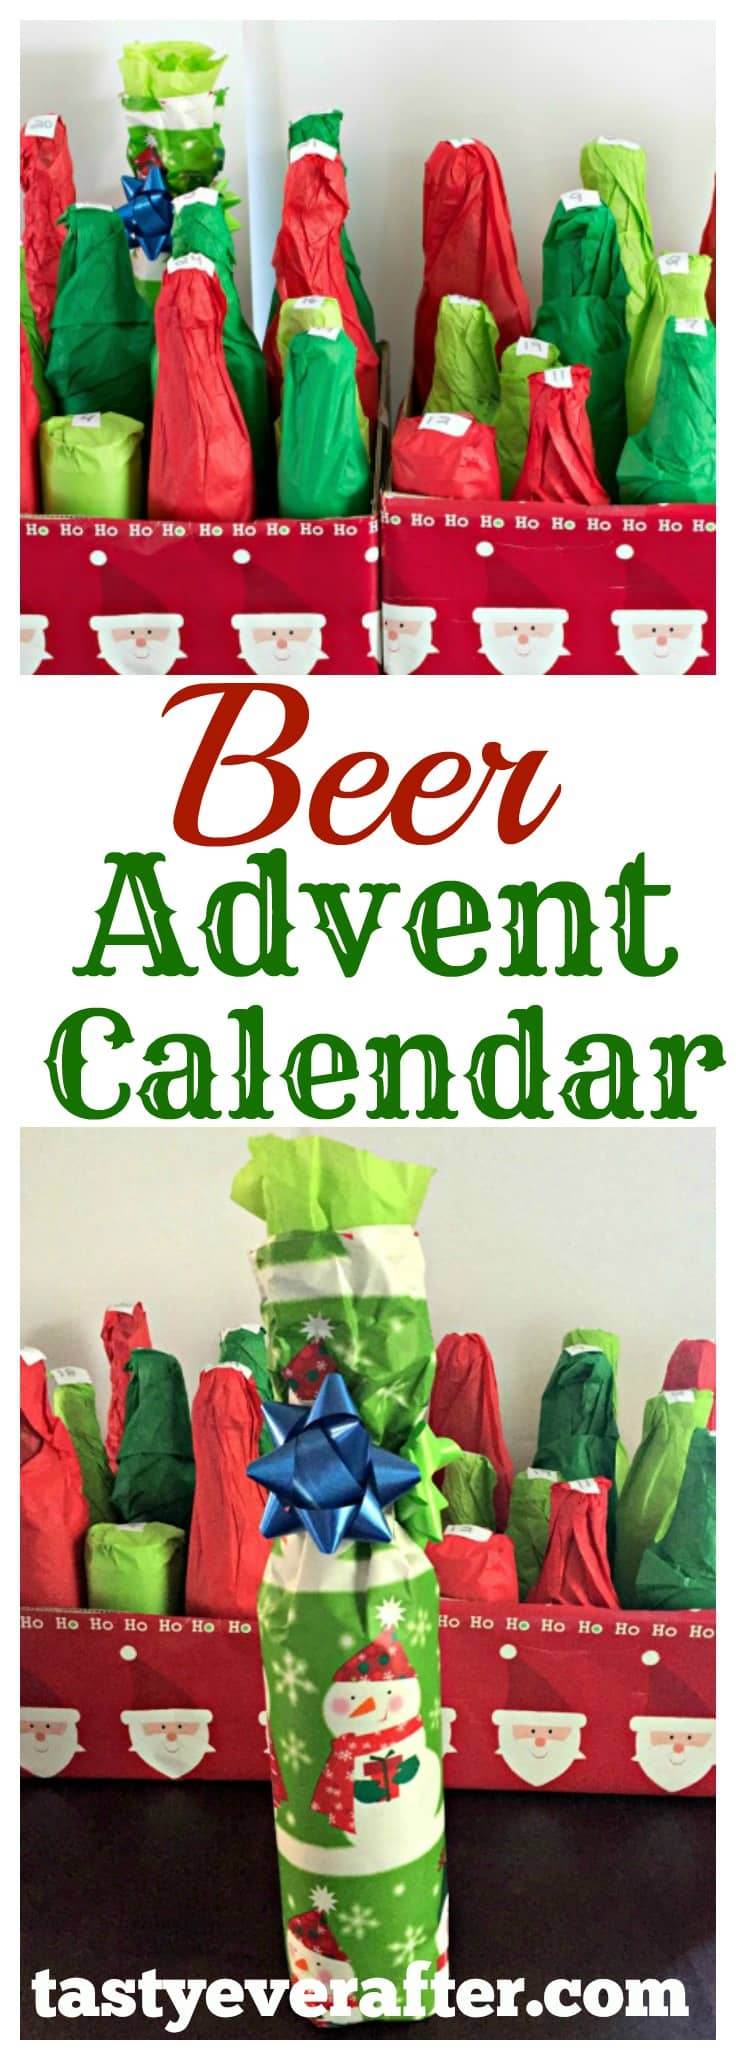 Diy Calendar For Boyfriend : Diy beer advent calendar do it your self